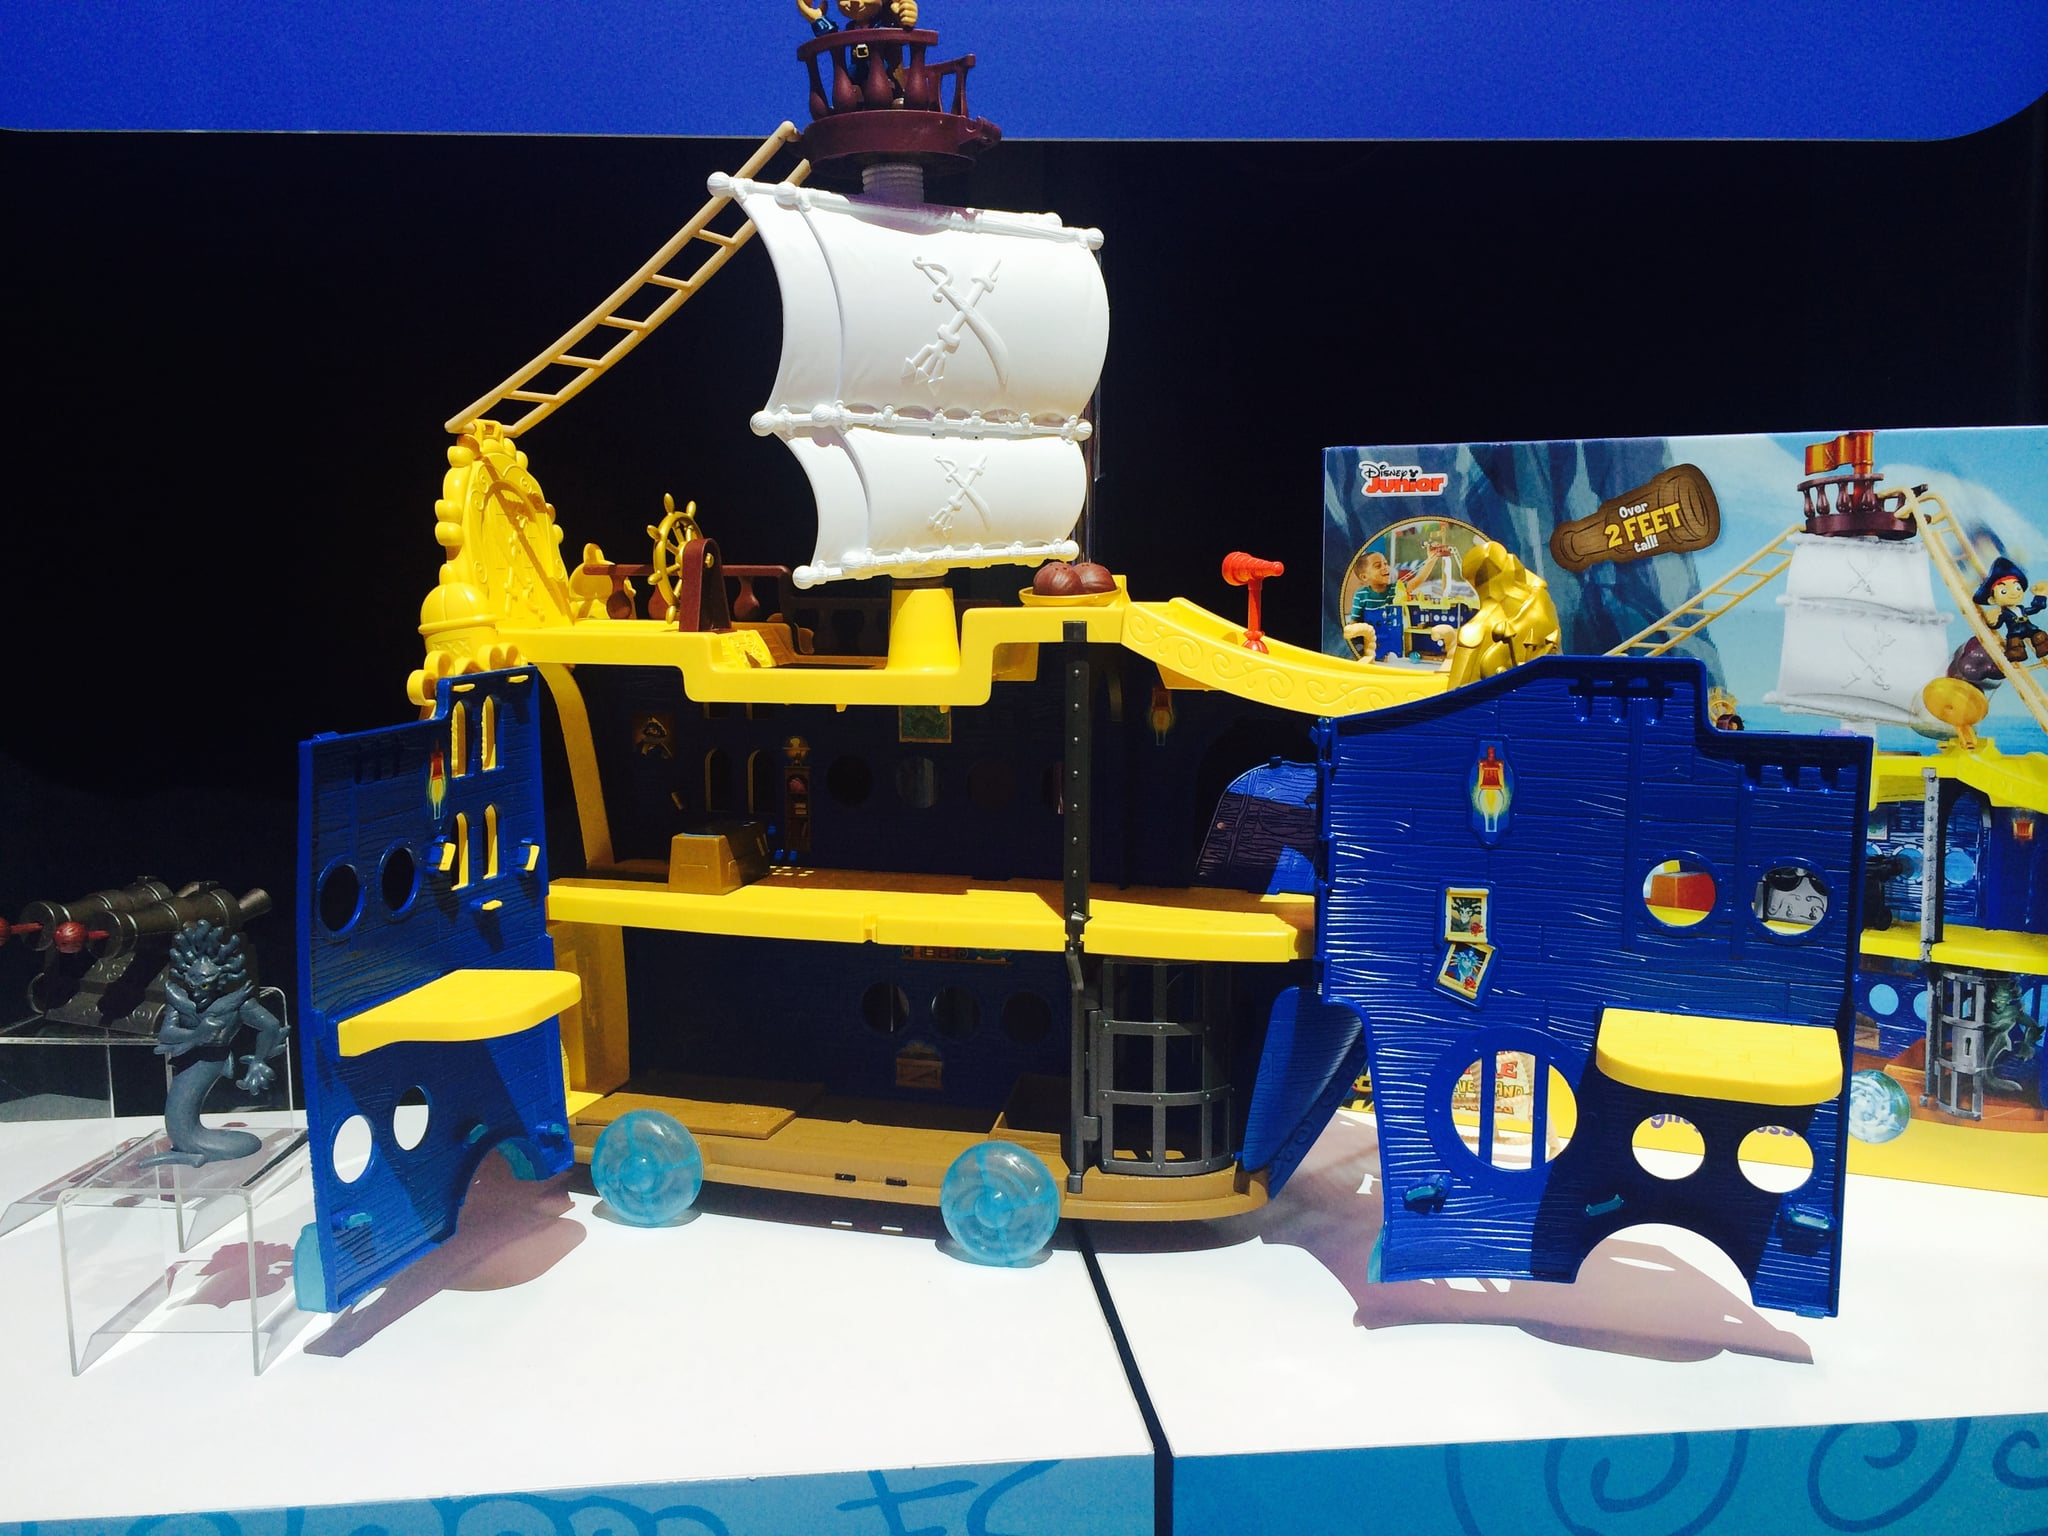 Captain Jake And The Neverland Pirates Mighty Colossus Here S Your Peek Into 200 Toys That Will Hit Store Shelves Later This Year Popsugar Family Photo 126